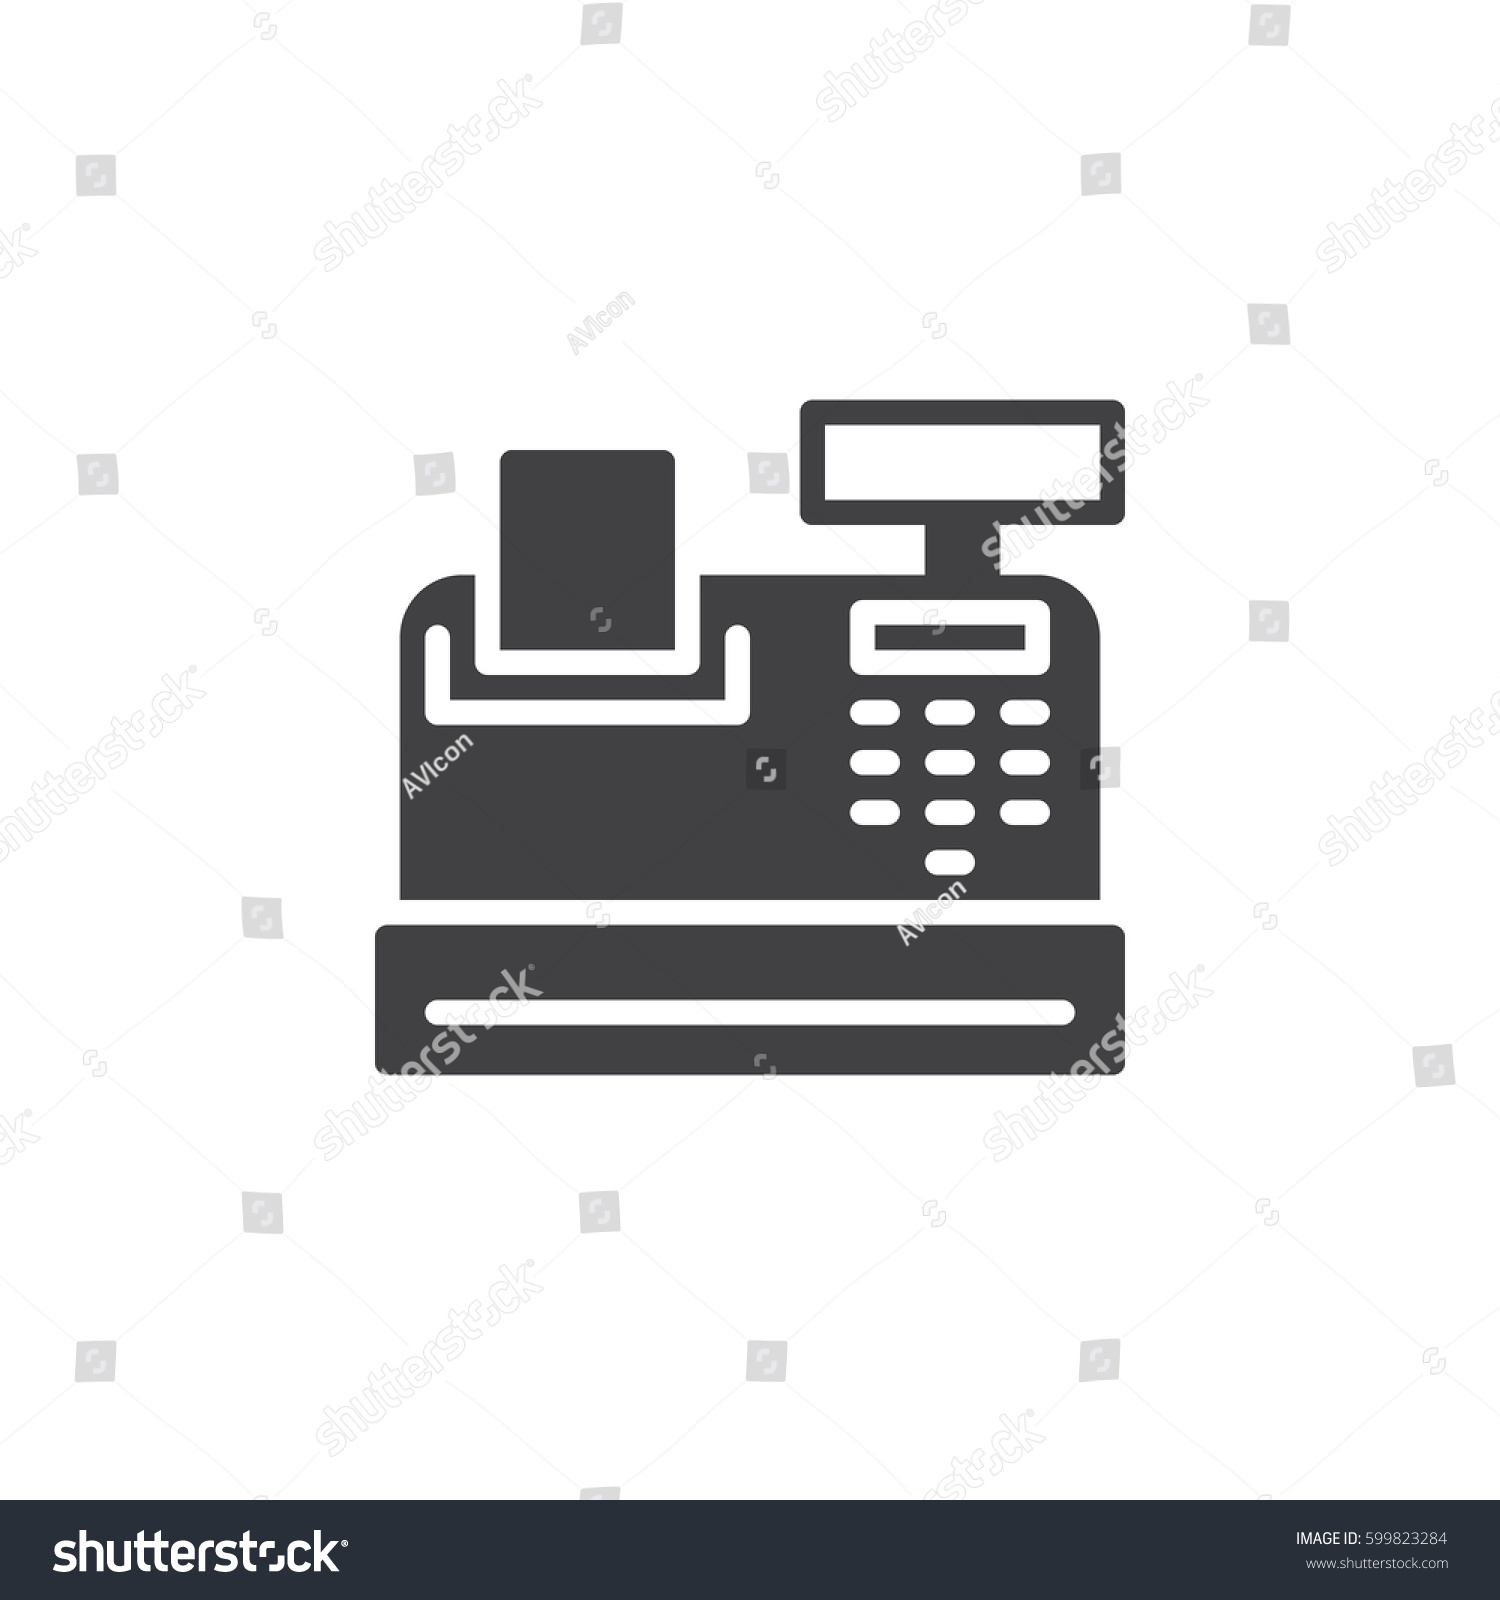 Cash register icon vector filled flat em vetor stock 599823284 cash register icon vector filled flat sign solid pictogram isolated on white symbol ccuart Image collections